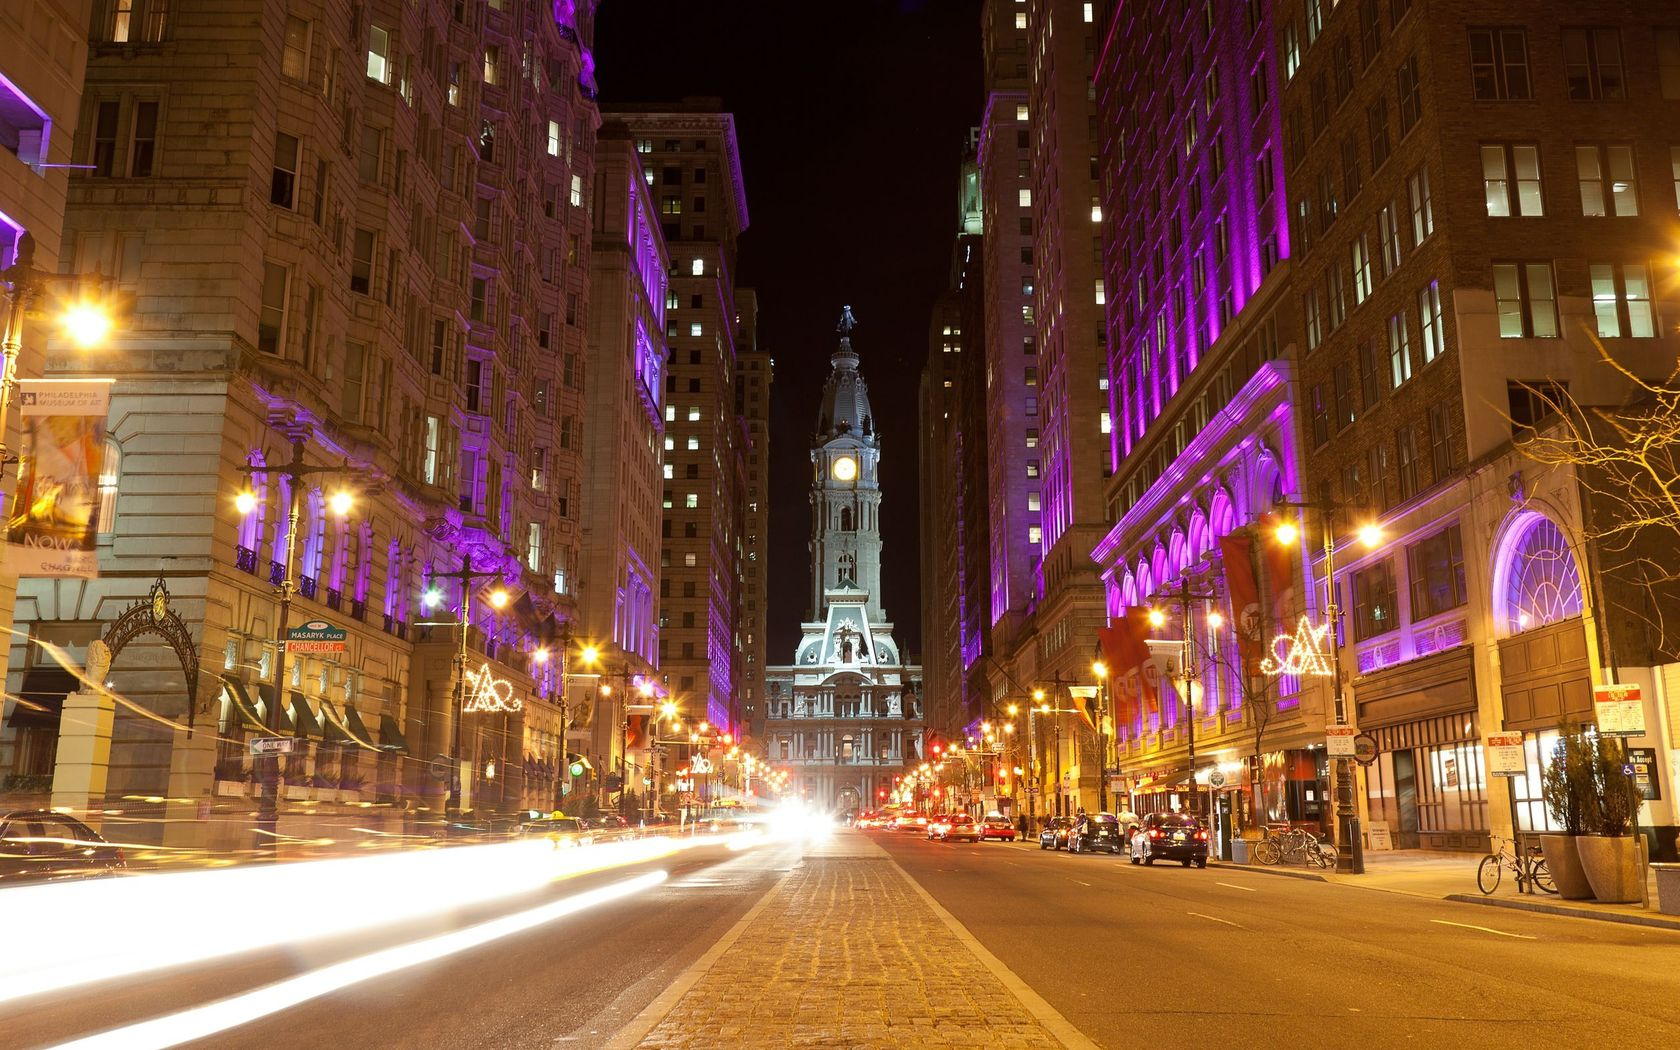 Philadelphia Computer Wallpapers Desktop Backgrounds 1680x1050 ID 1680x1050